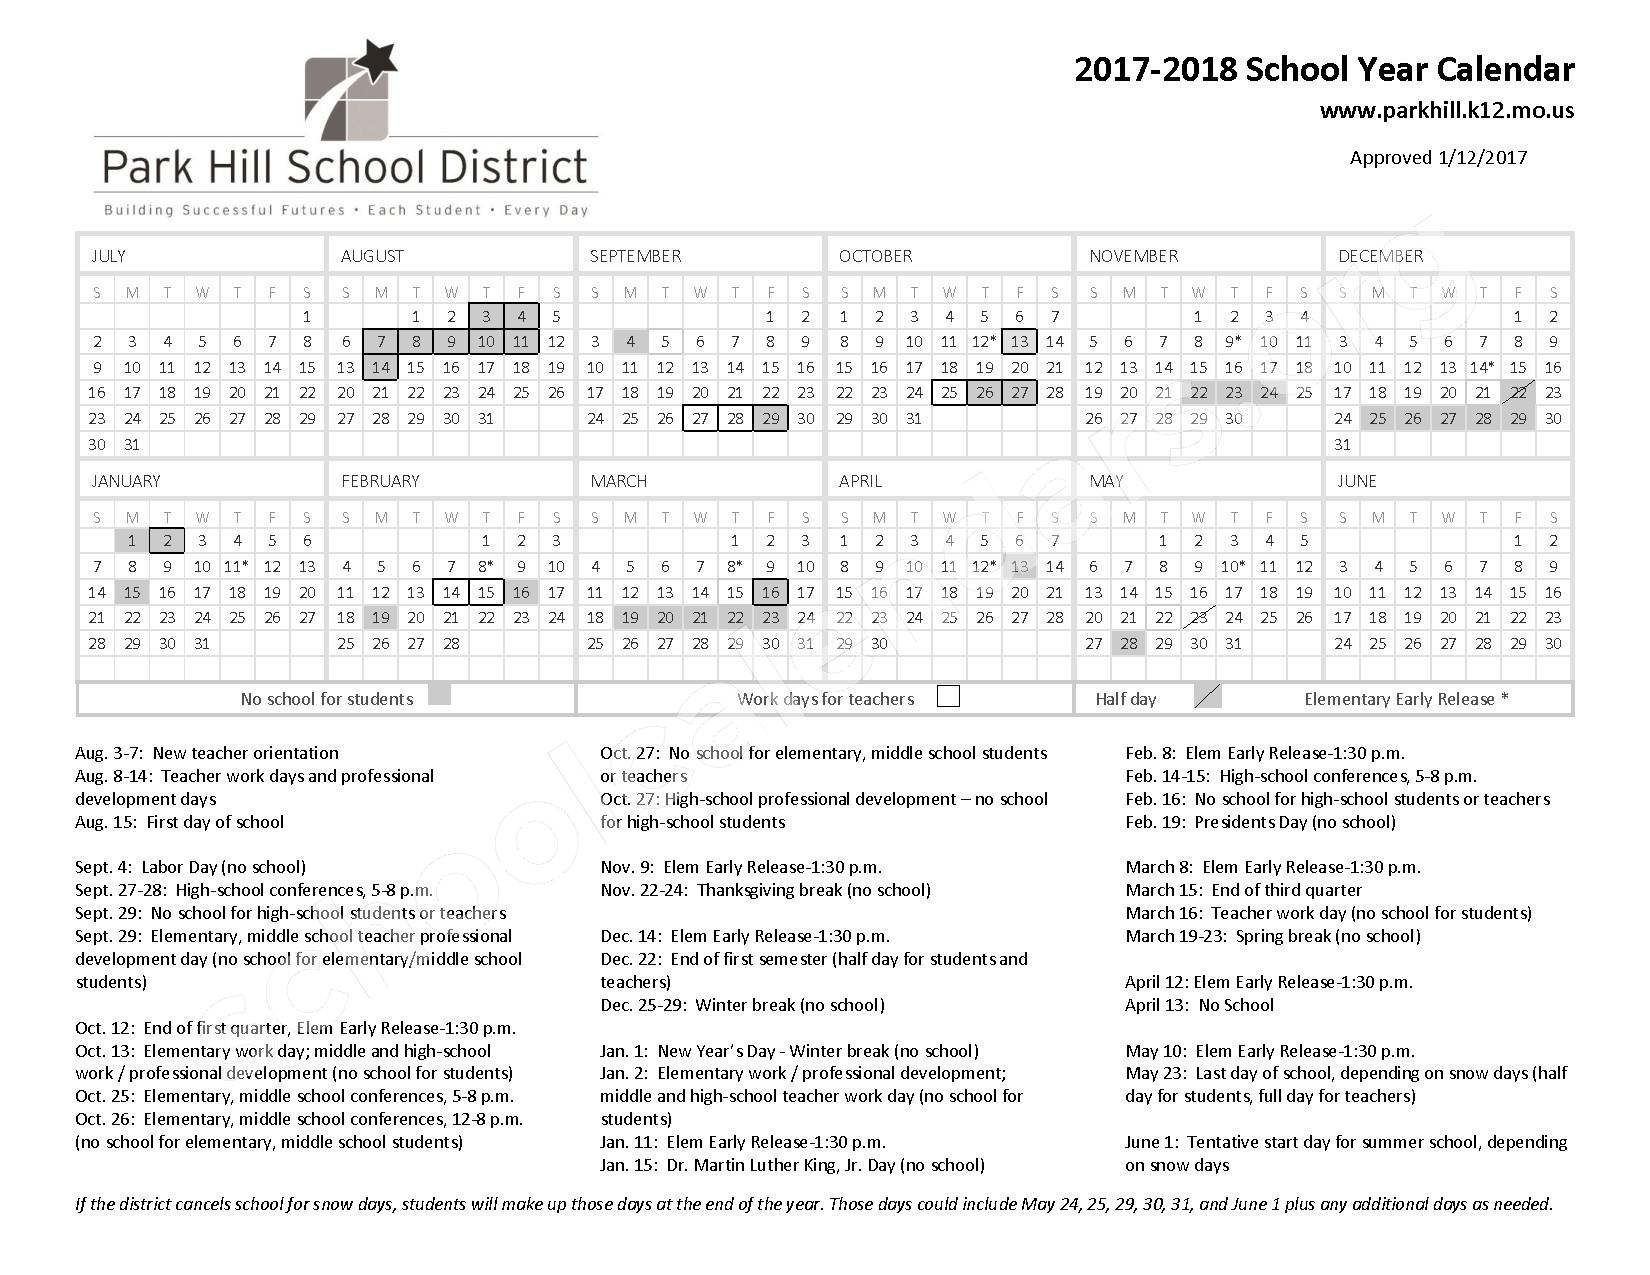 2017 - 2018 Academic Calendar – Park Hill School District – page 1